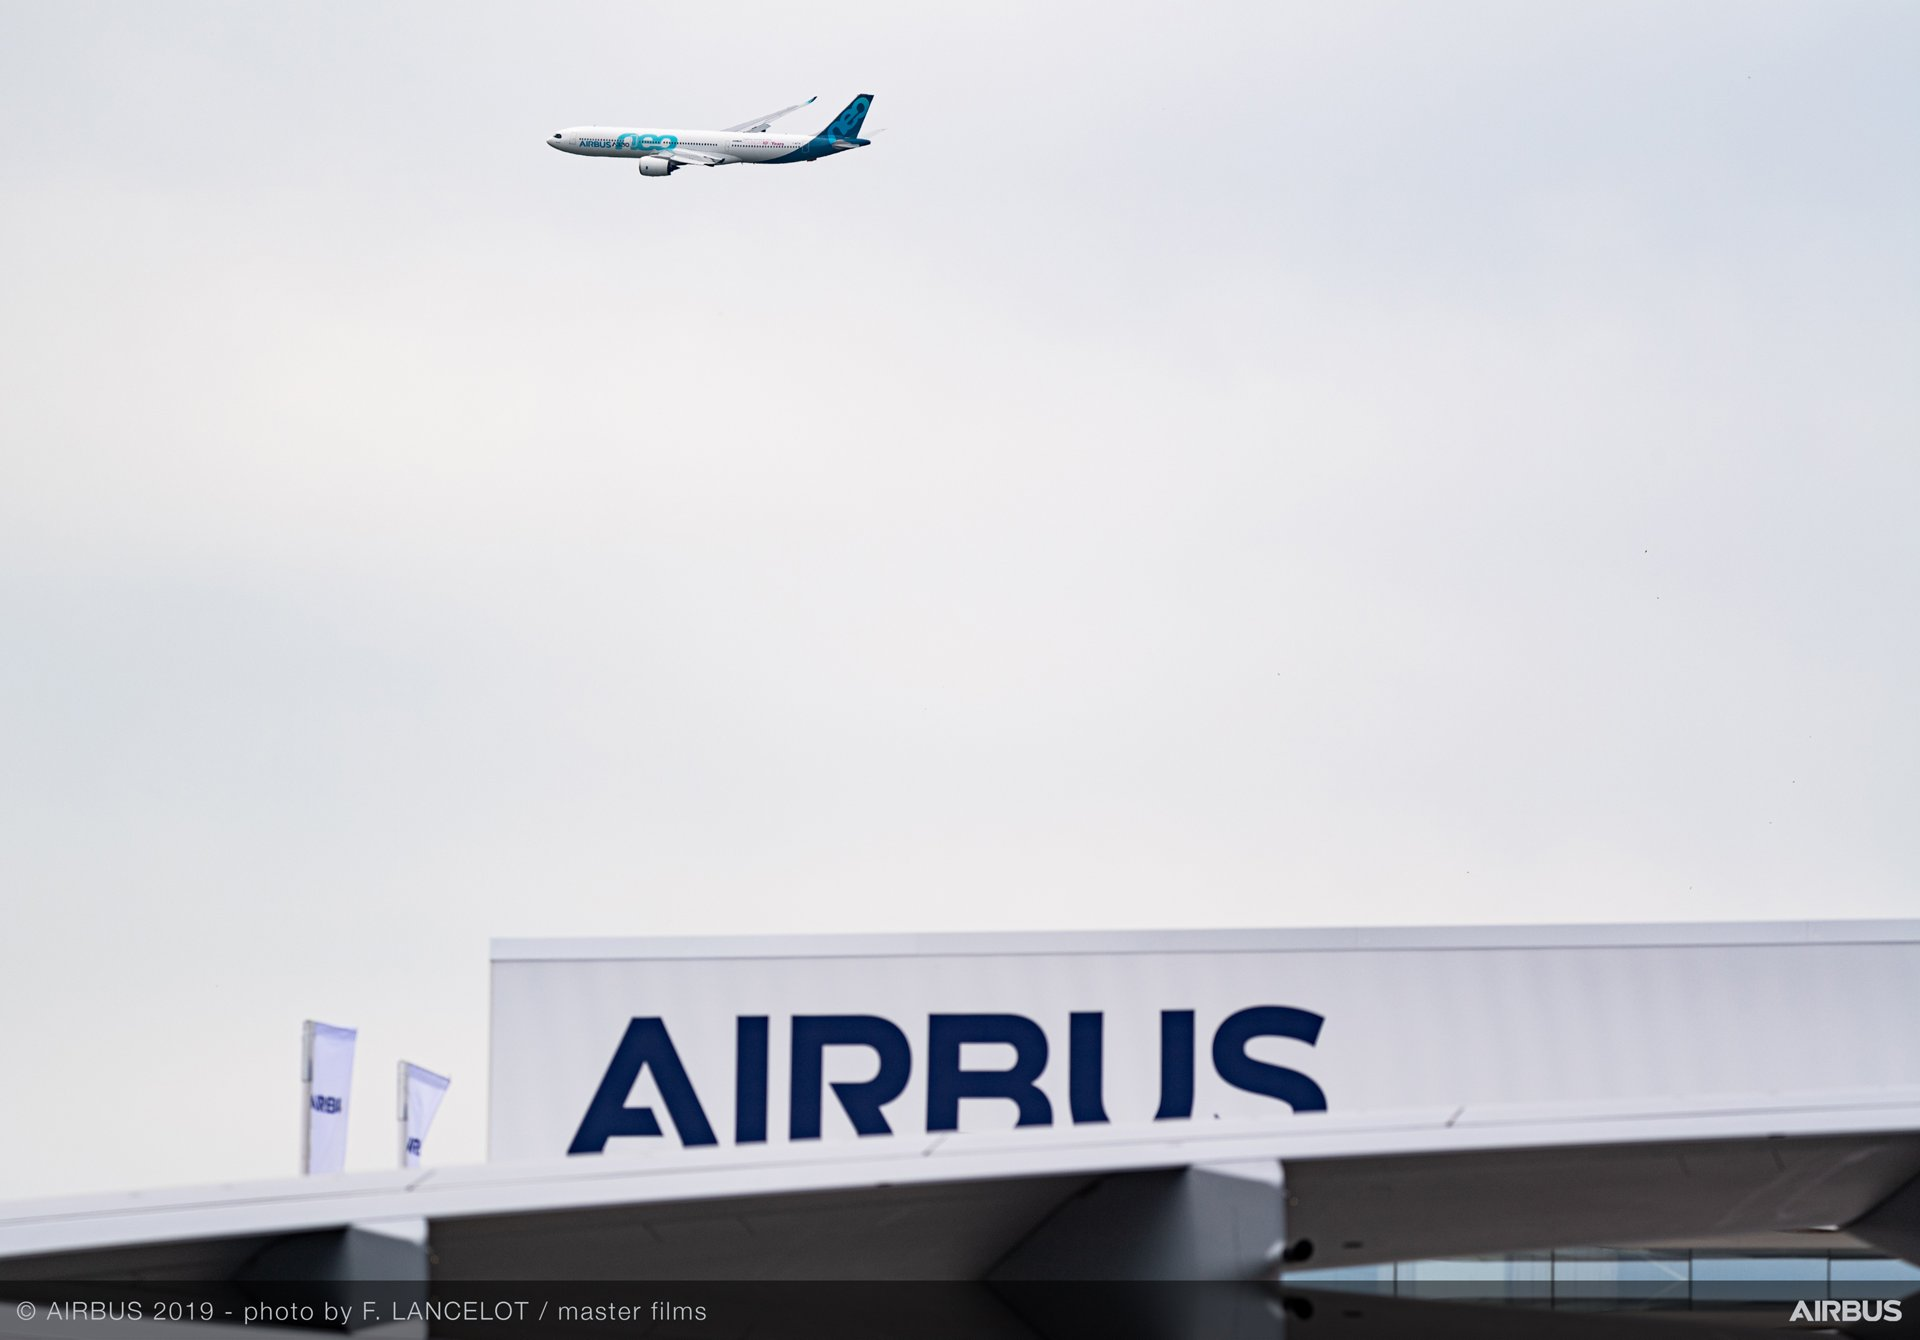 PAS2019 A330-900 flying over Airbus pavilion    The A330neo – seen here in the 2019 Paris Air Show's flying display during – is the latest evolution in Airbus' market-leading A330 Family